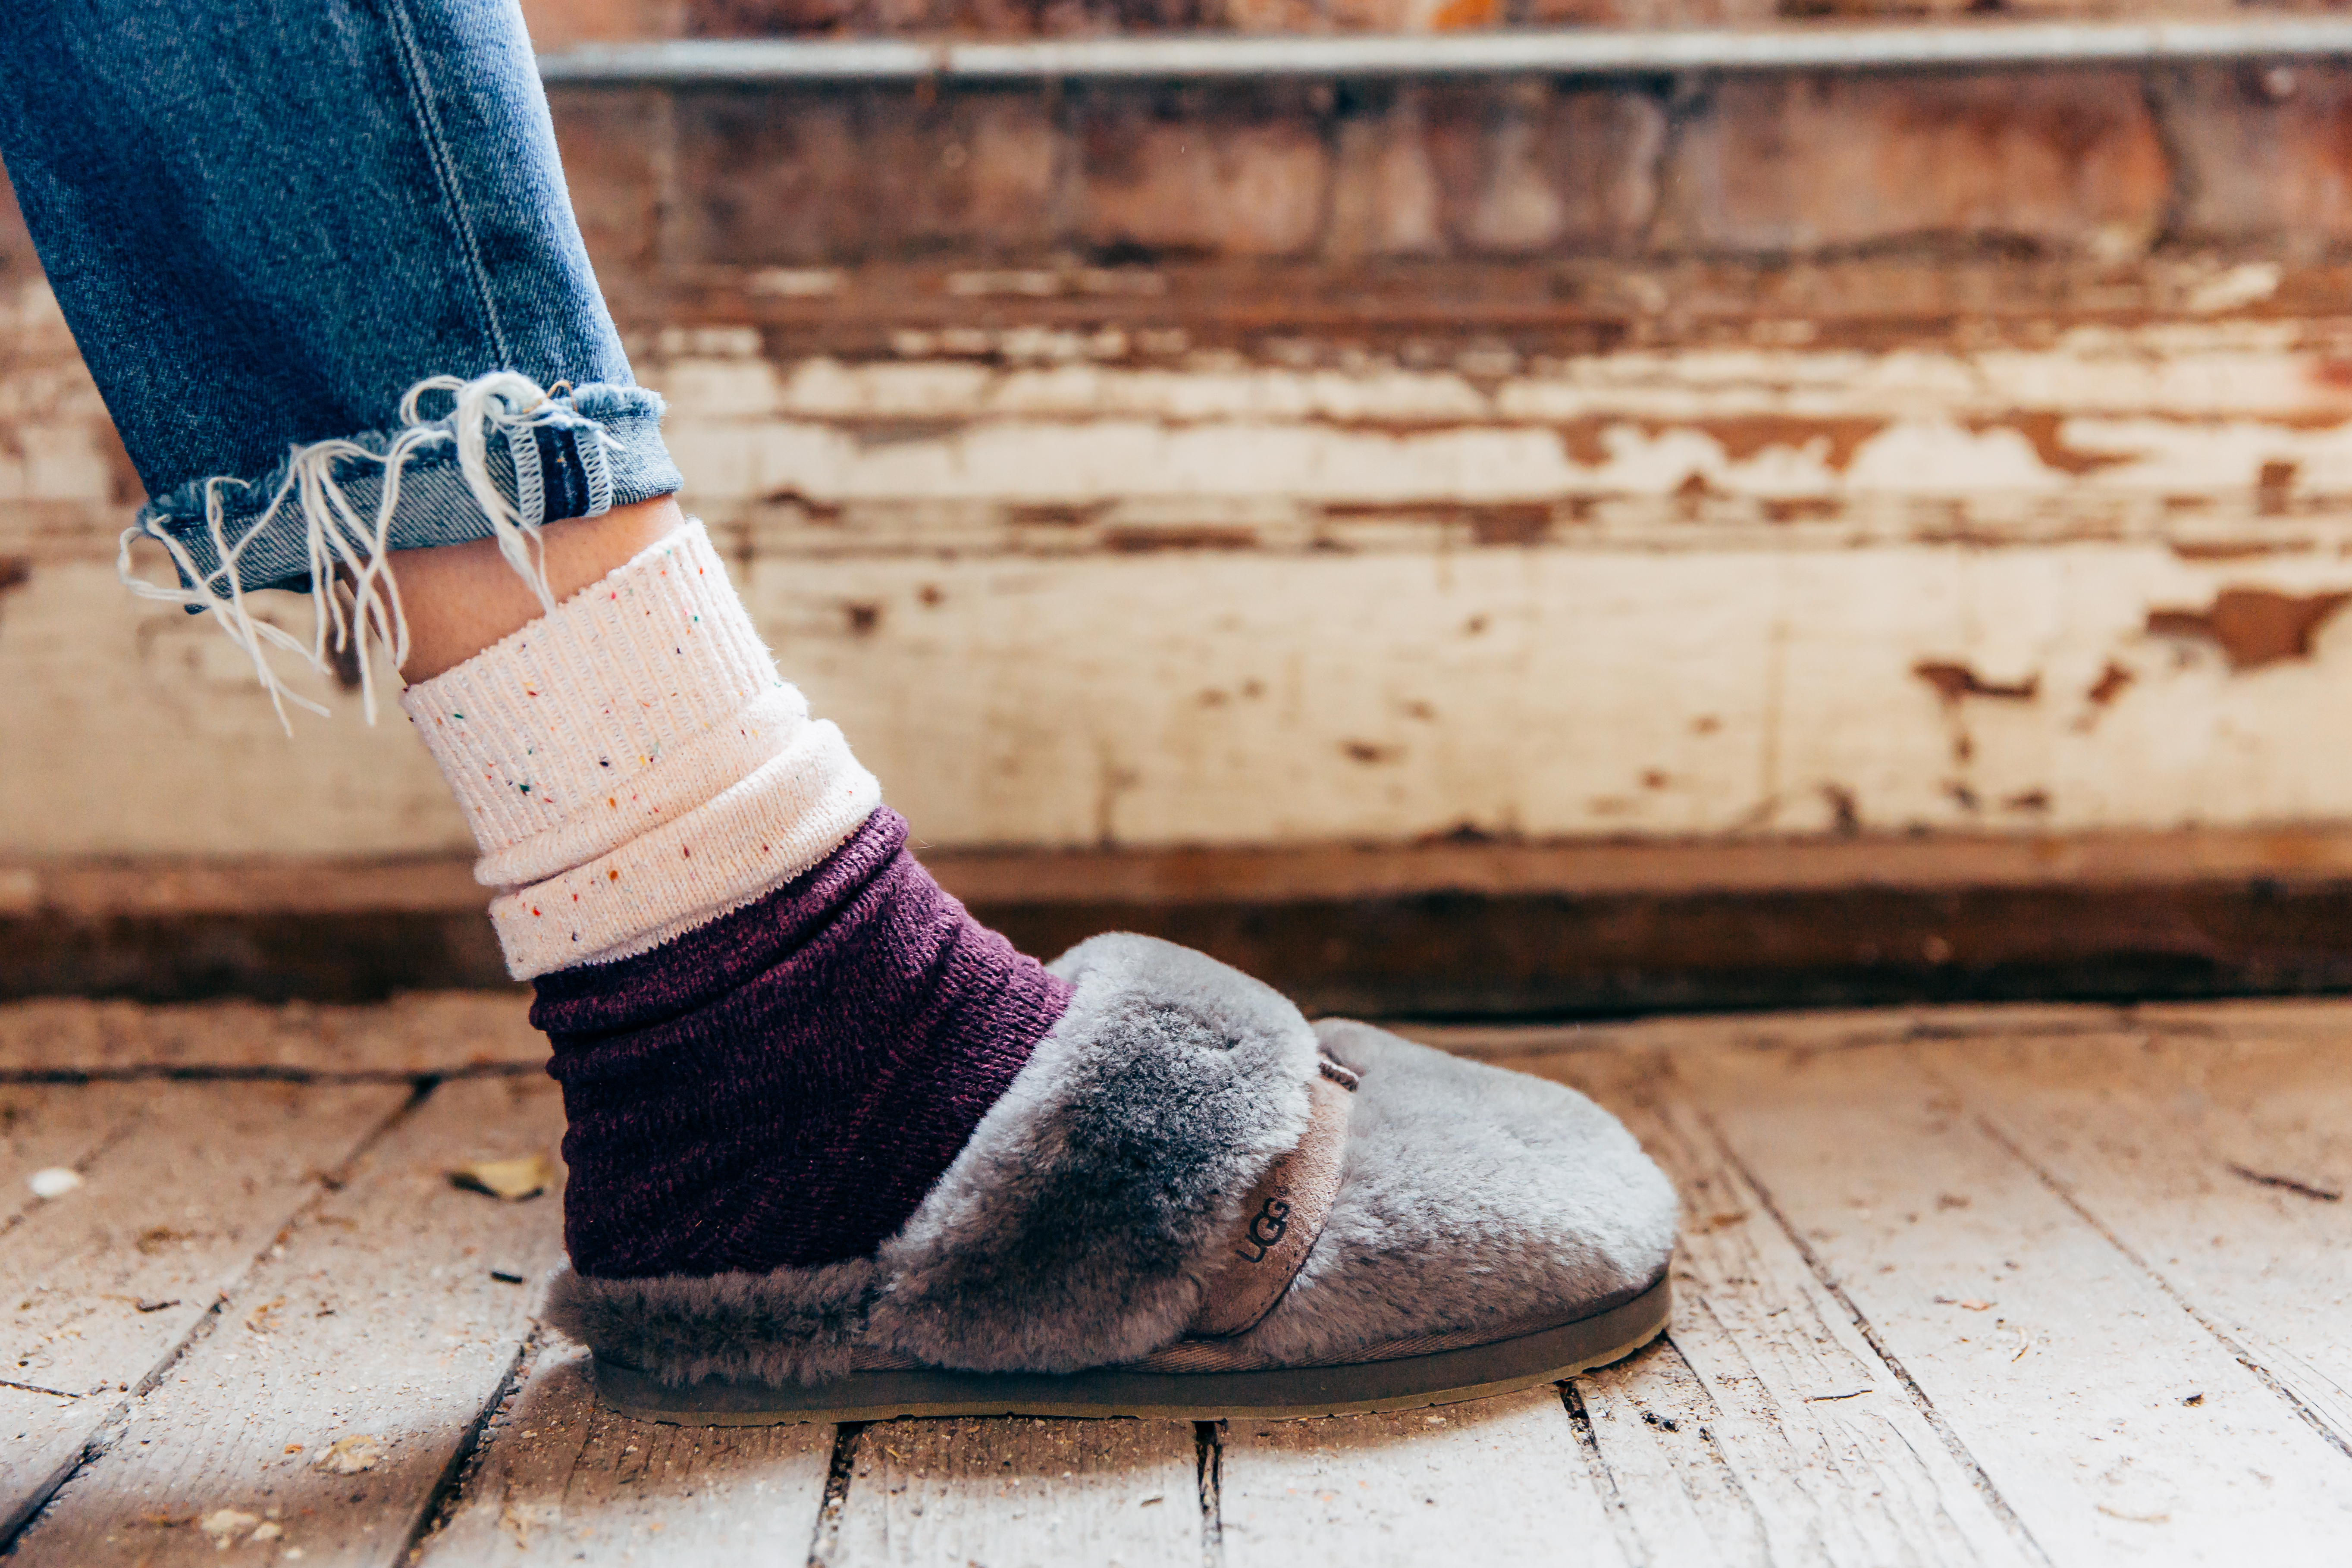 Muk Luks socks with UGG slippers | How To Style Socks With Shoes